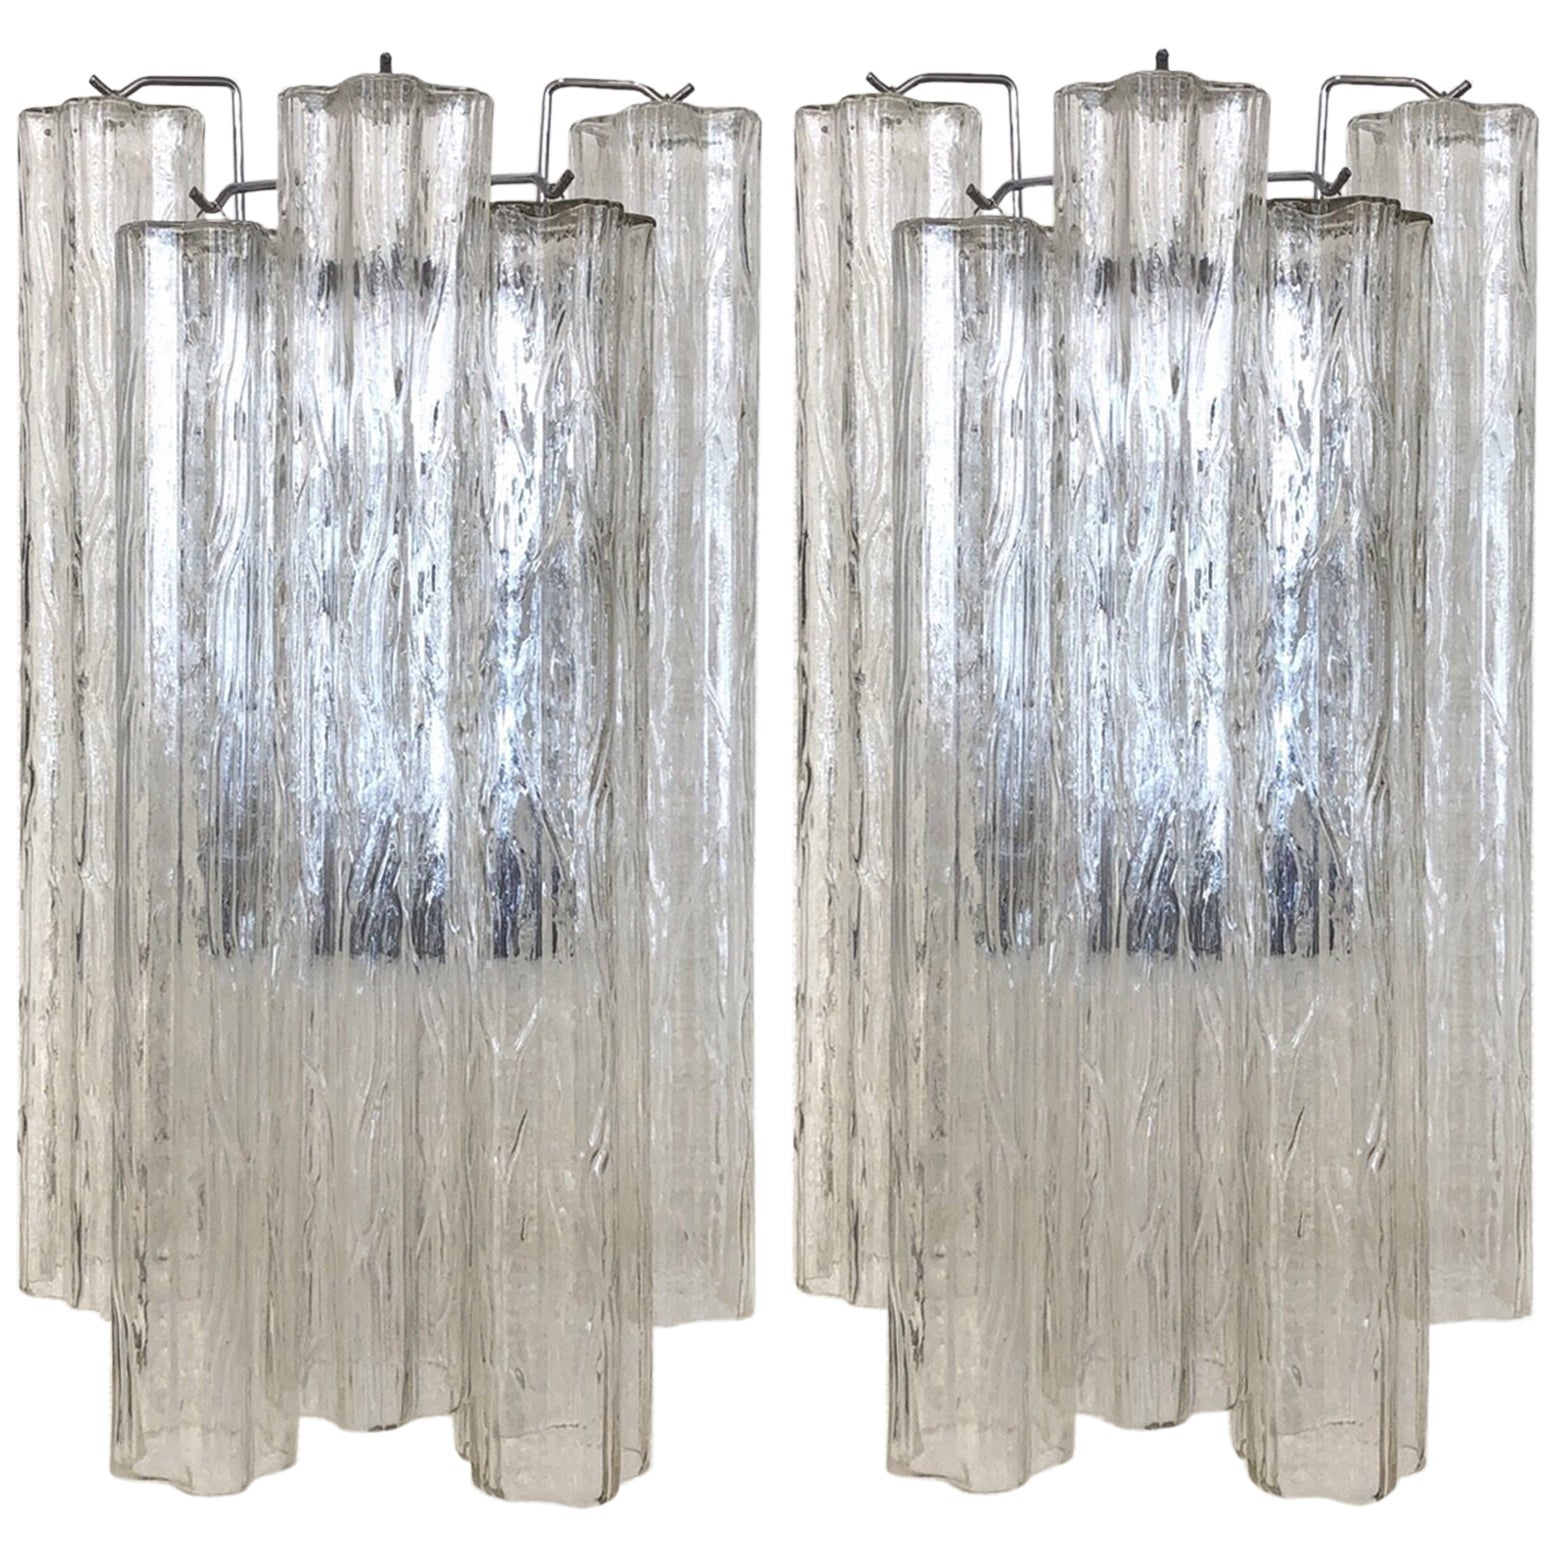 """Pair of Large Italian Murano Glass """"Tronchi"""" Wall Sconces by Venini"""